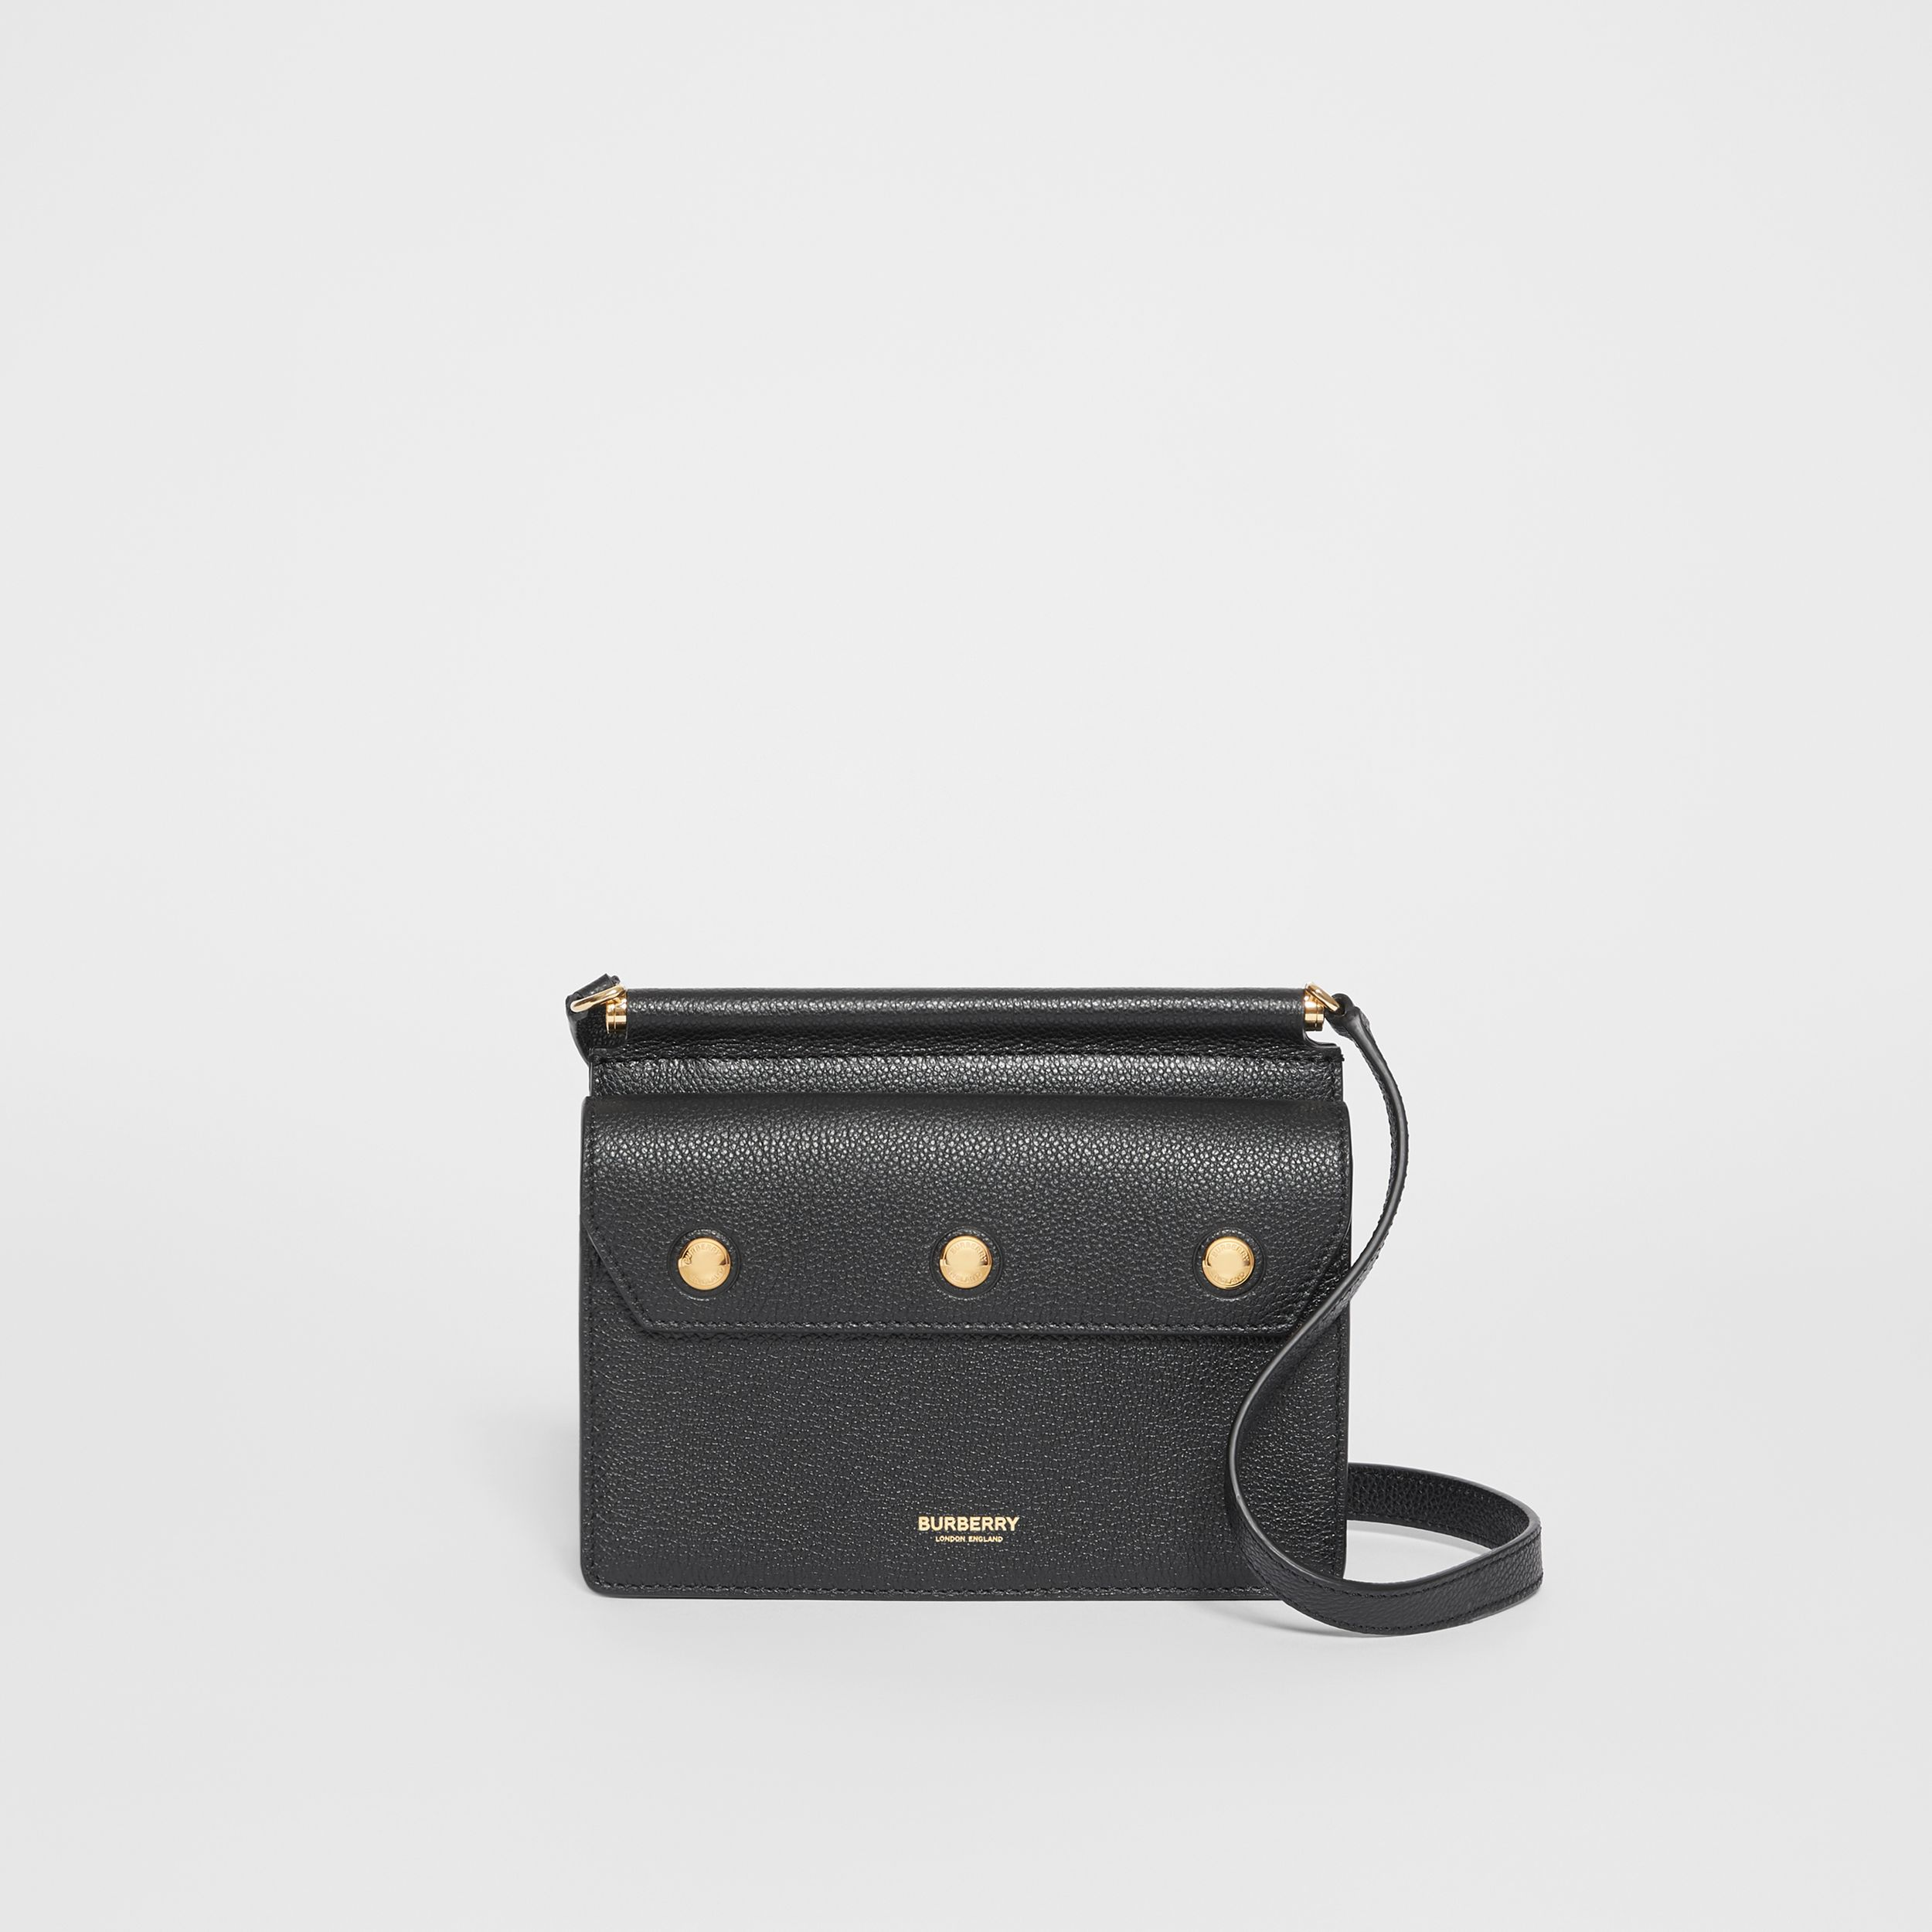 Mini Leather Title Bag with Pocket Detail in Black - Women | Burberry - 1